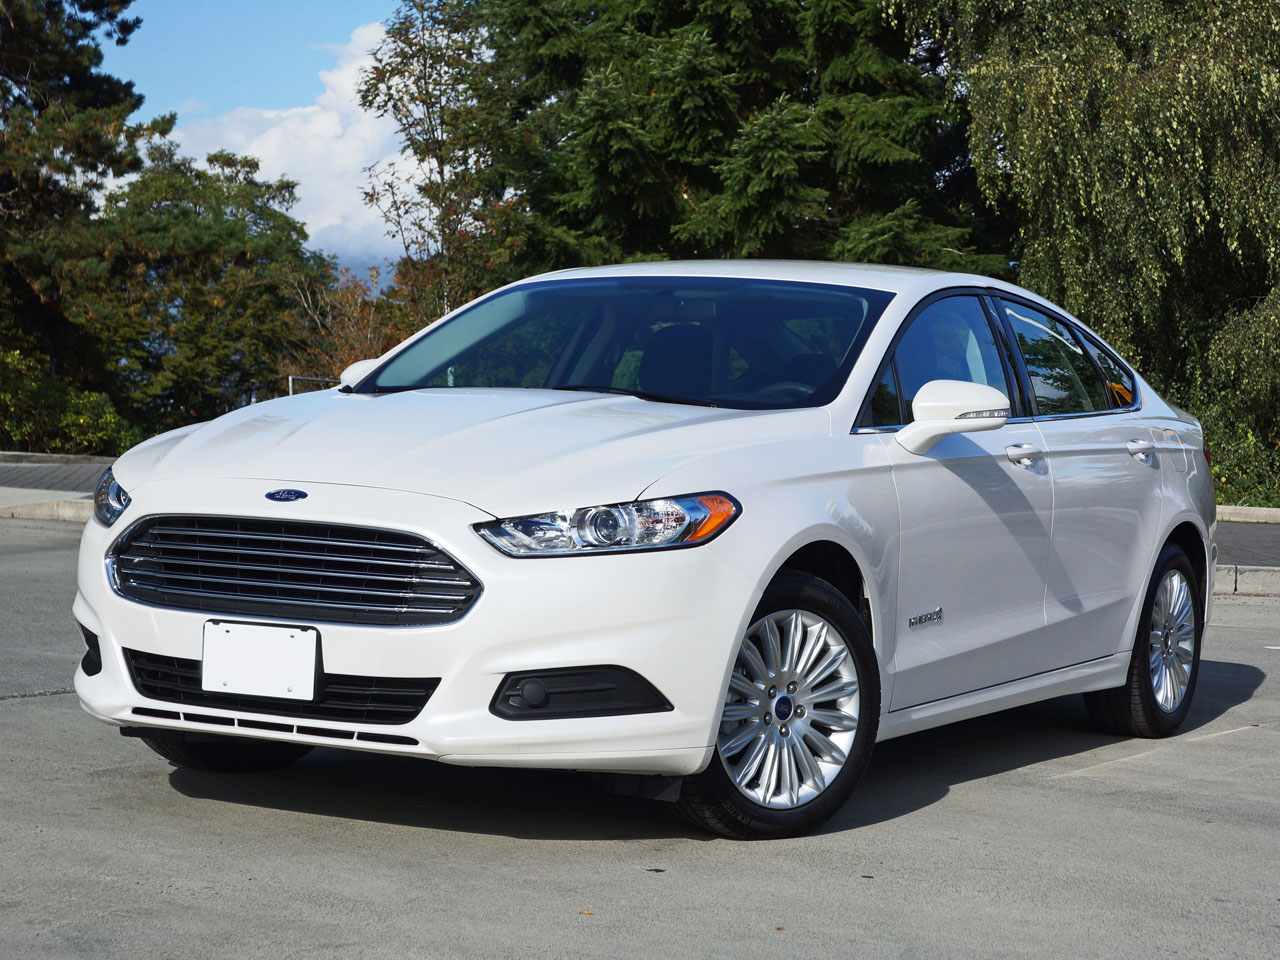 2014 ford fusion hybrid se road test review carcostcanada. Black Bedroom Furniture Sets. Home Design Ideas